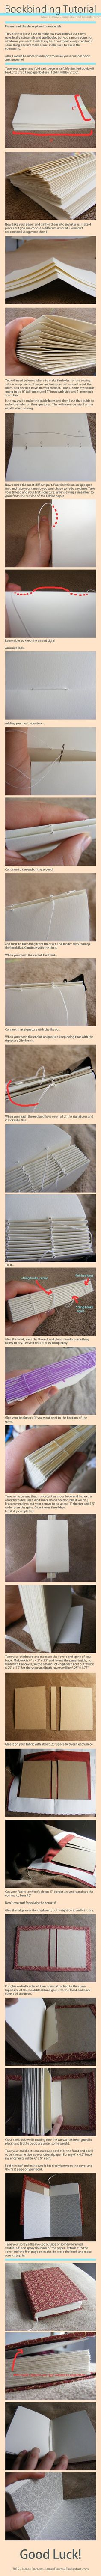 cucitura a libro  How to bind your own books!